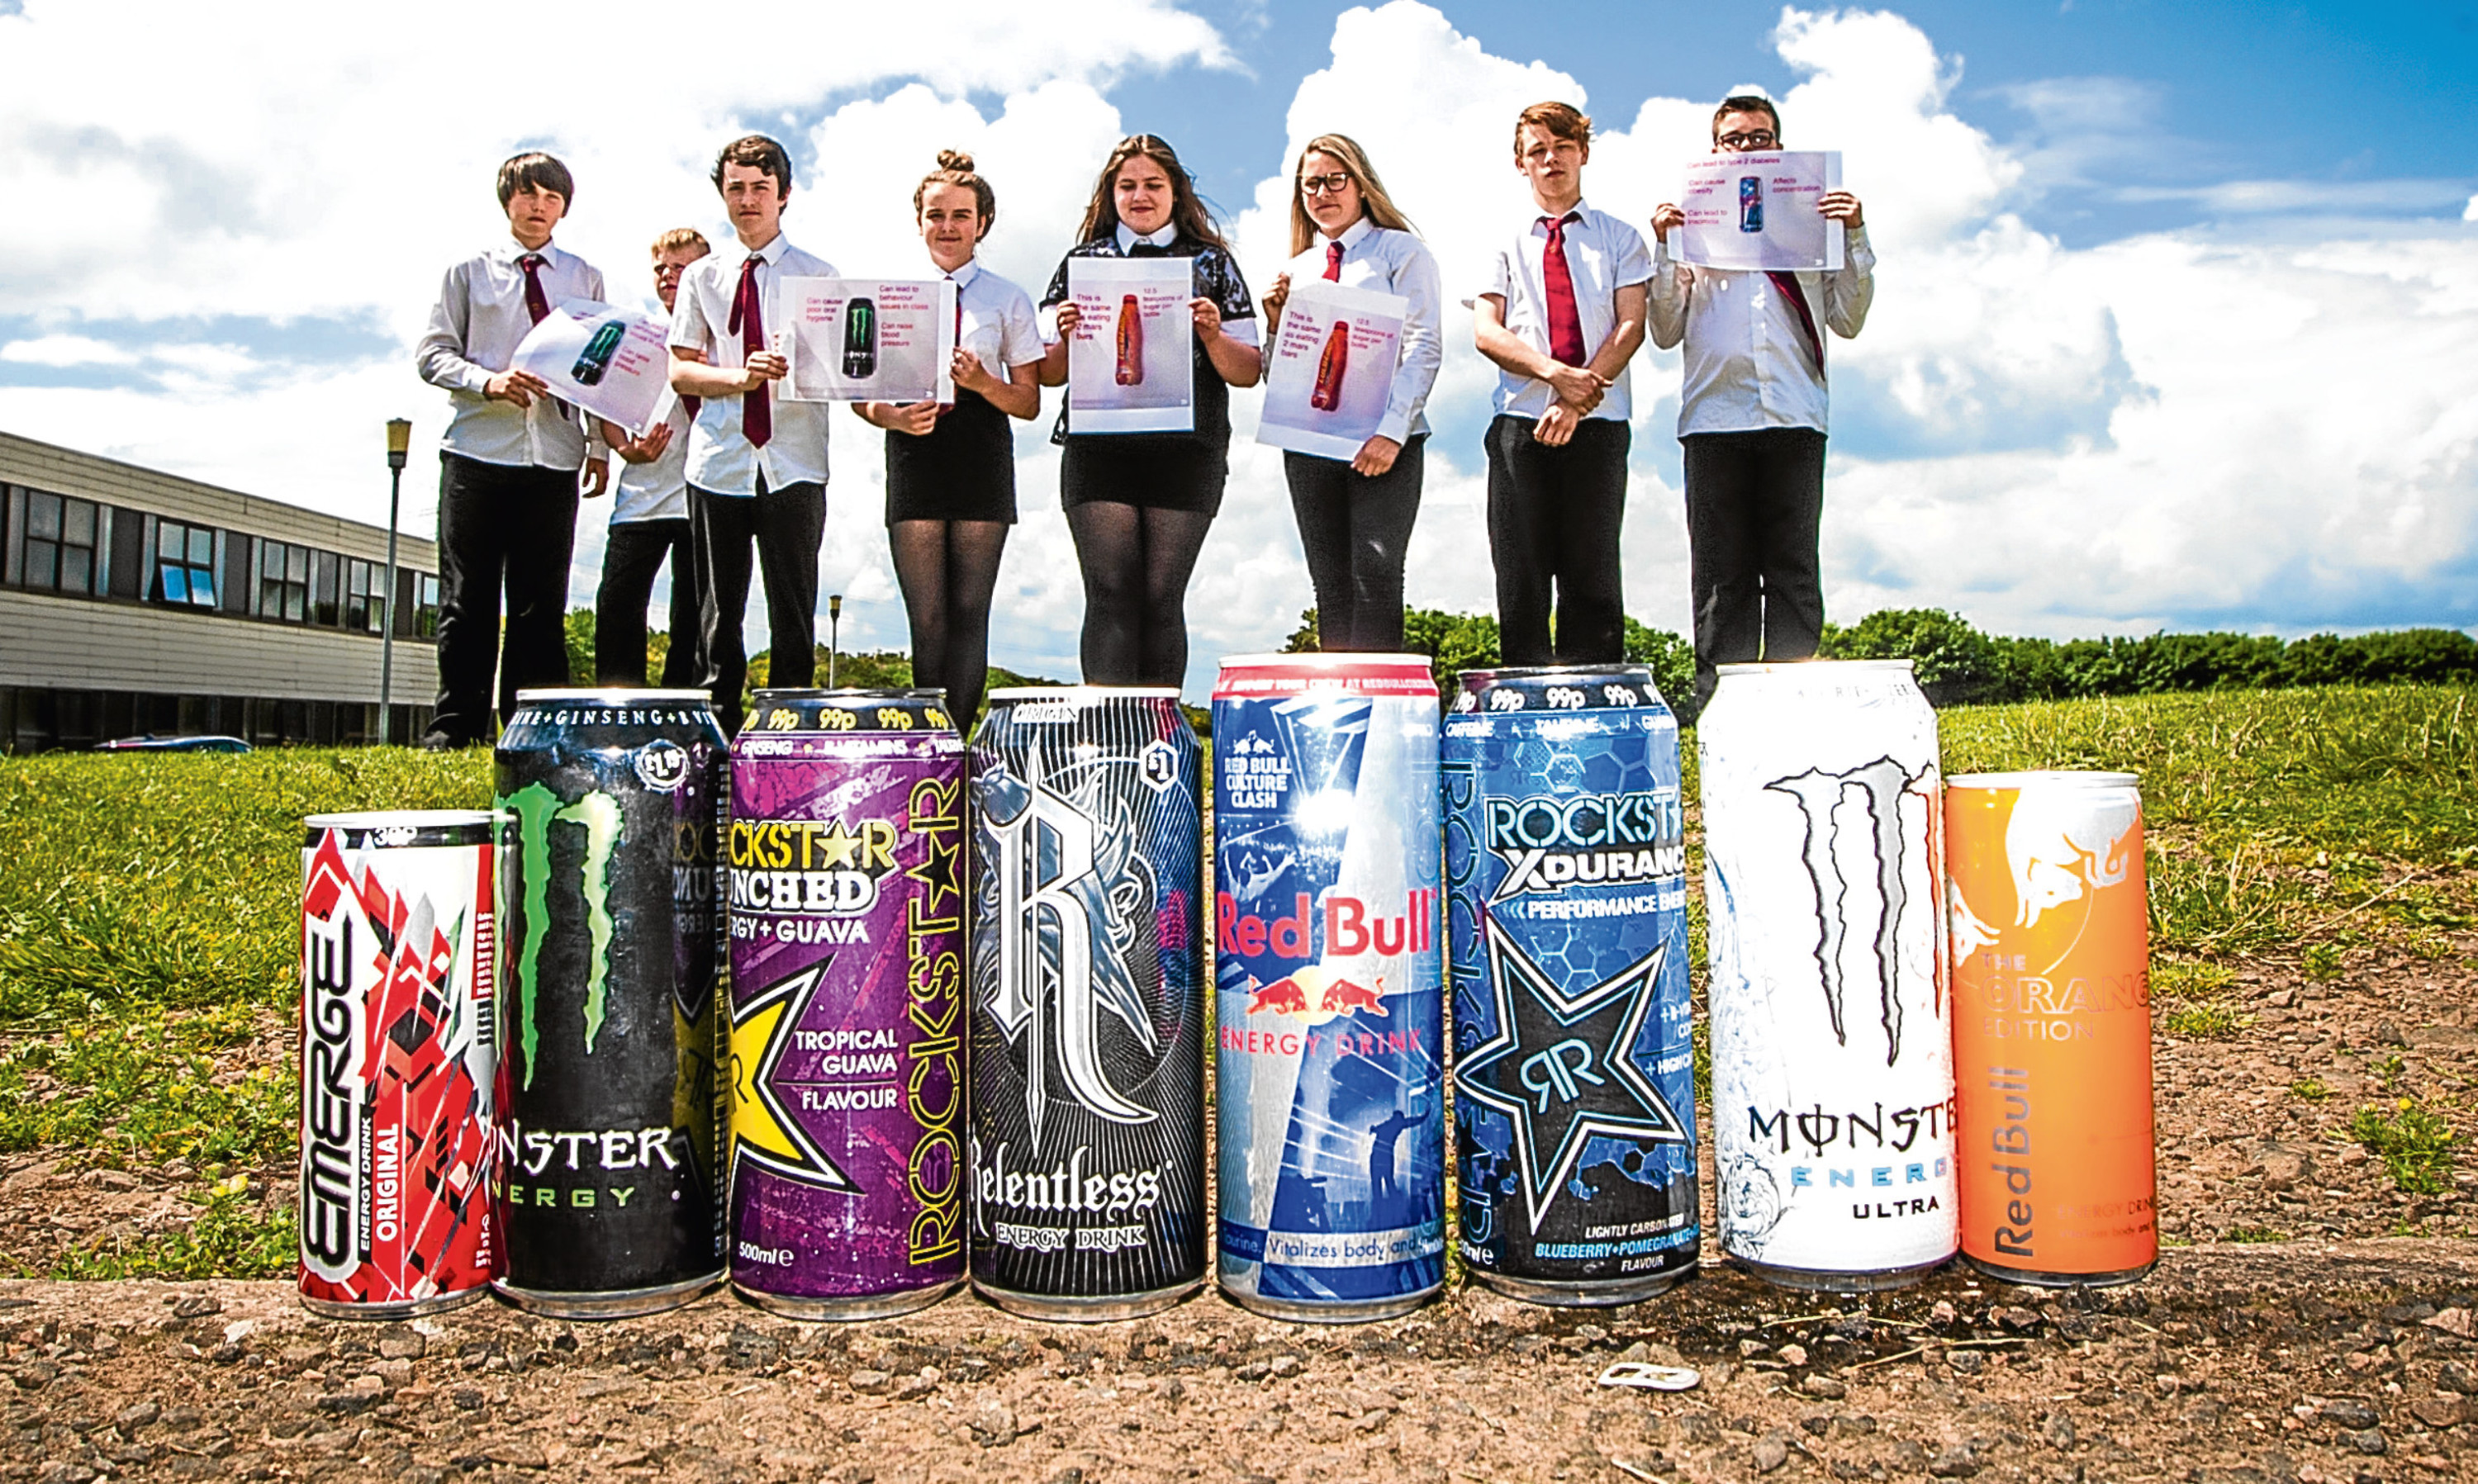 Braeview Academy along with Olympian Vikki Bunce look into the effects of the high caffeine, high sugar energy drinks as part of The Courier's Can It campaign, which has taken on even more significance after the death of a teenager in the USA from consuming too much caffeine.